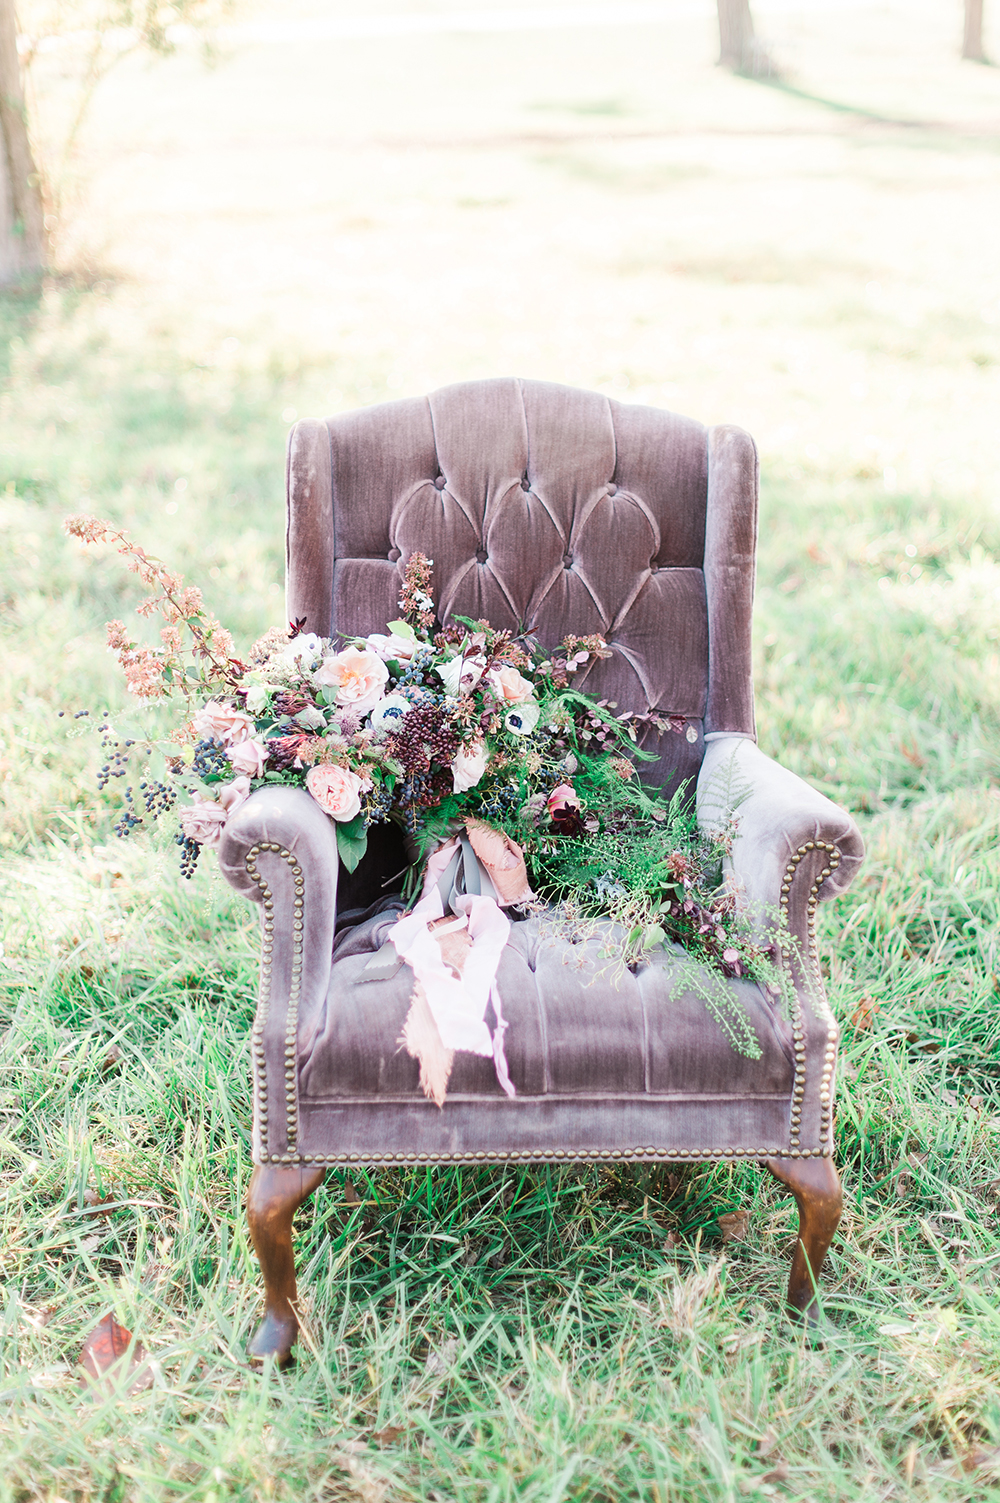 wedding bouquet - photo by Jenny B Photos http://ruffledblog.com/ethereal-wedding-inspiration-with-vintage-accents